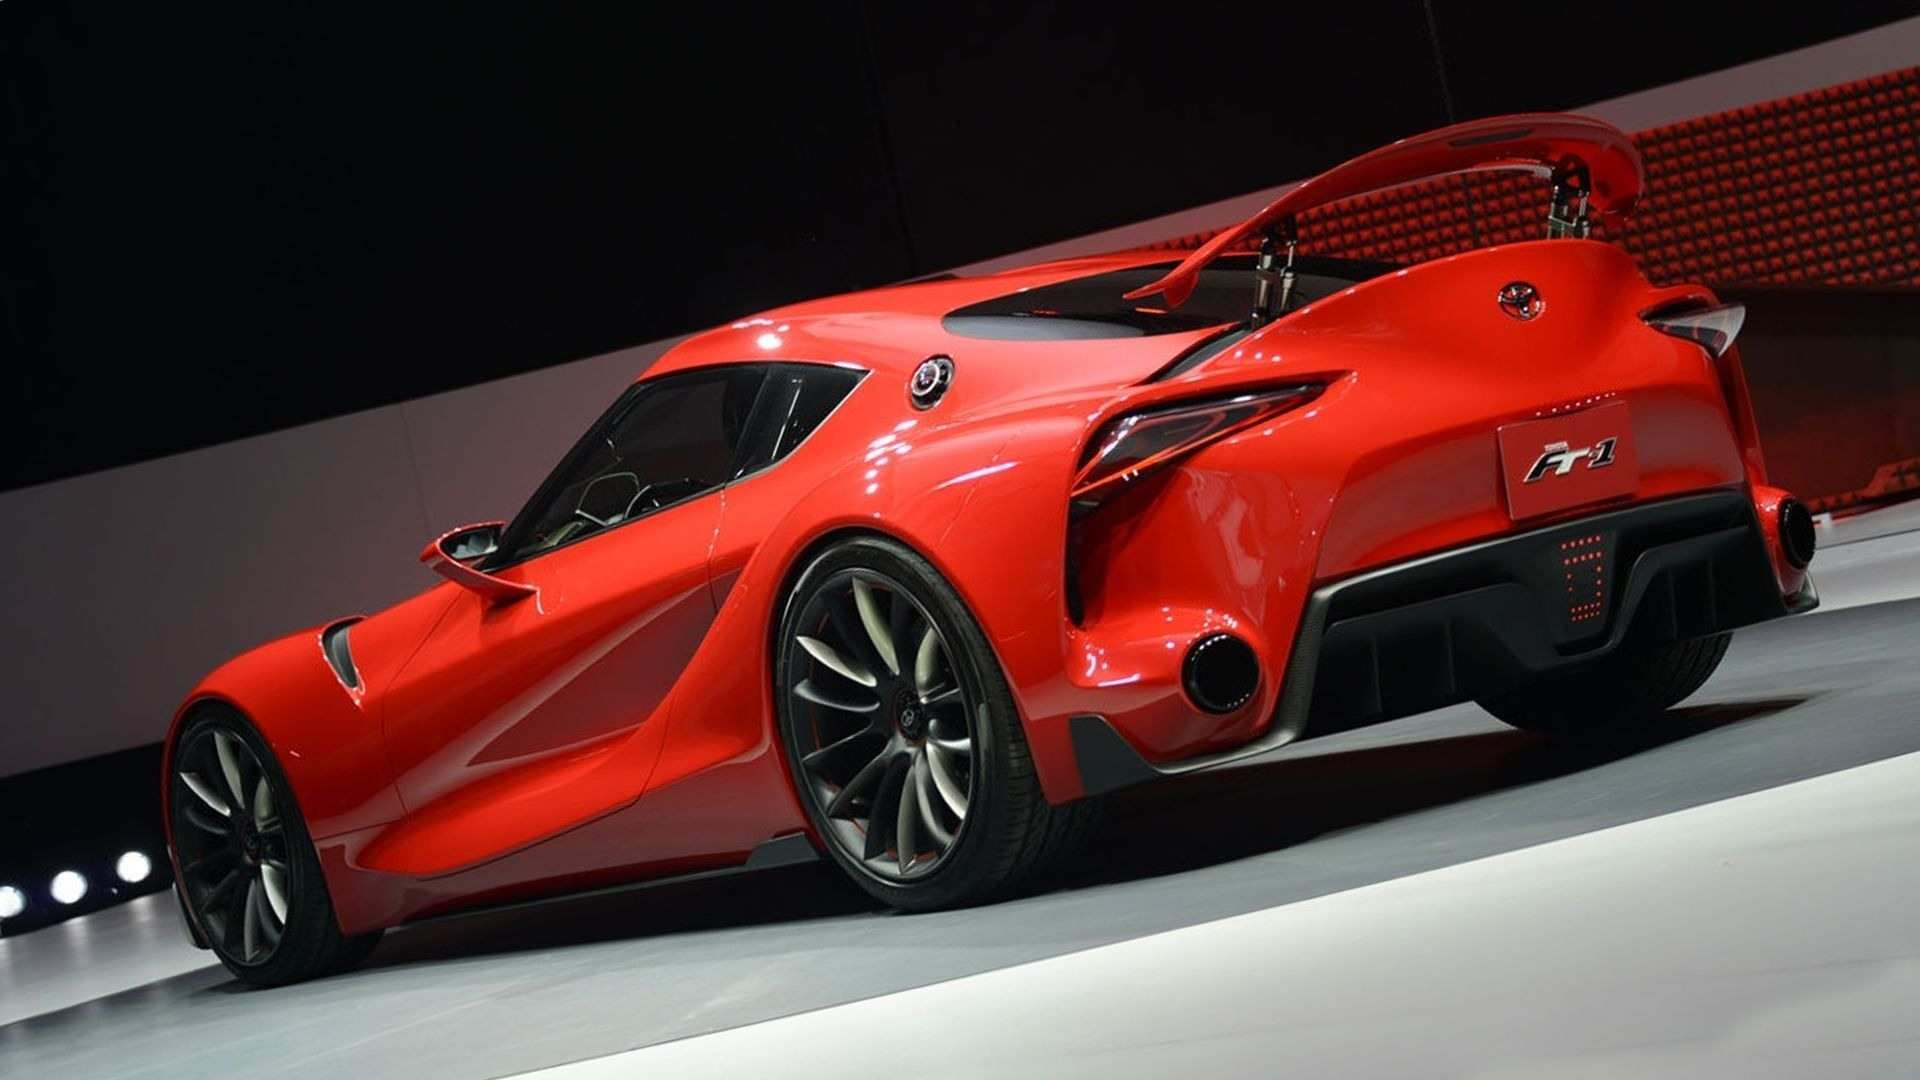 28 New 2019 Toyota Ft 1 Specs with 2019 Toyota Ft 1